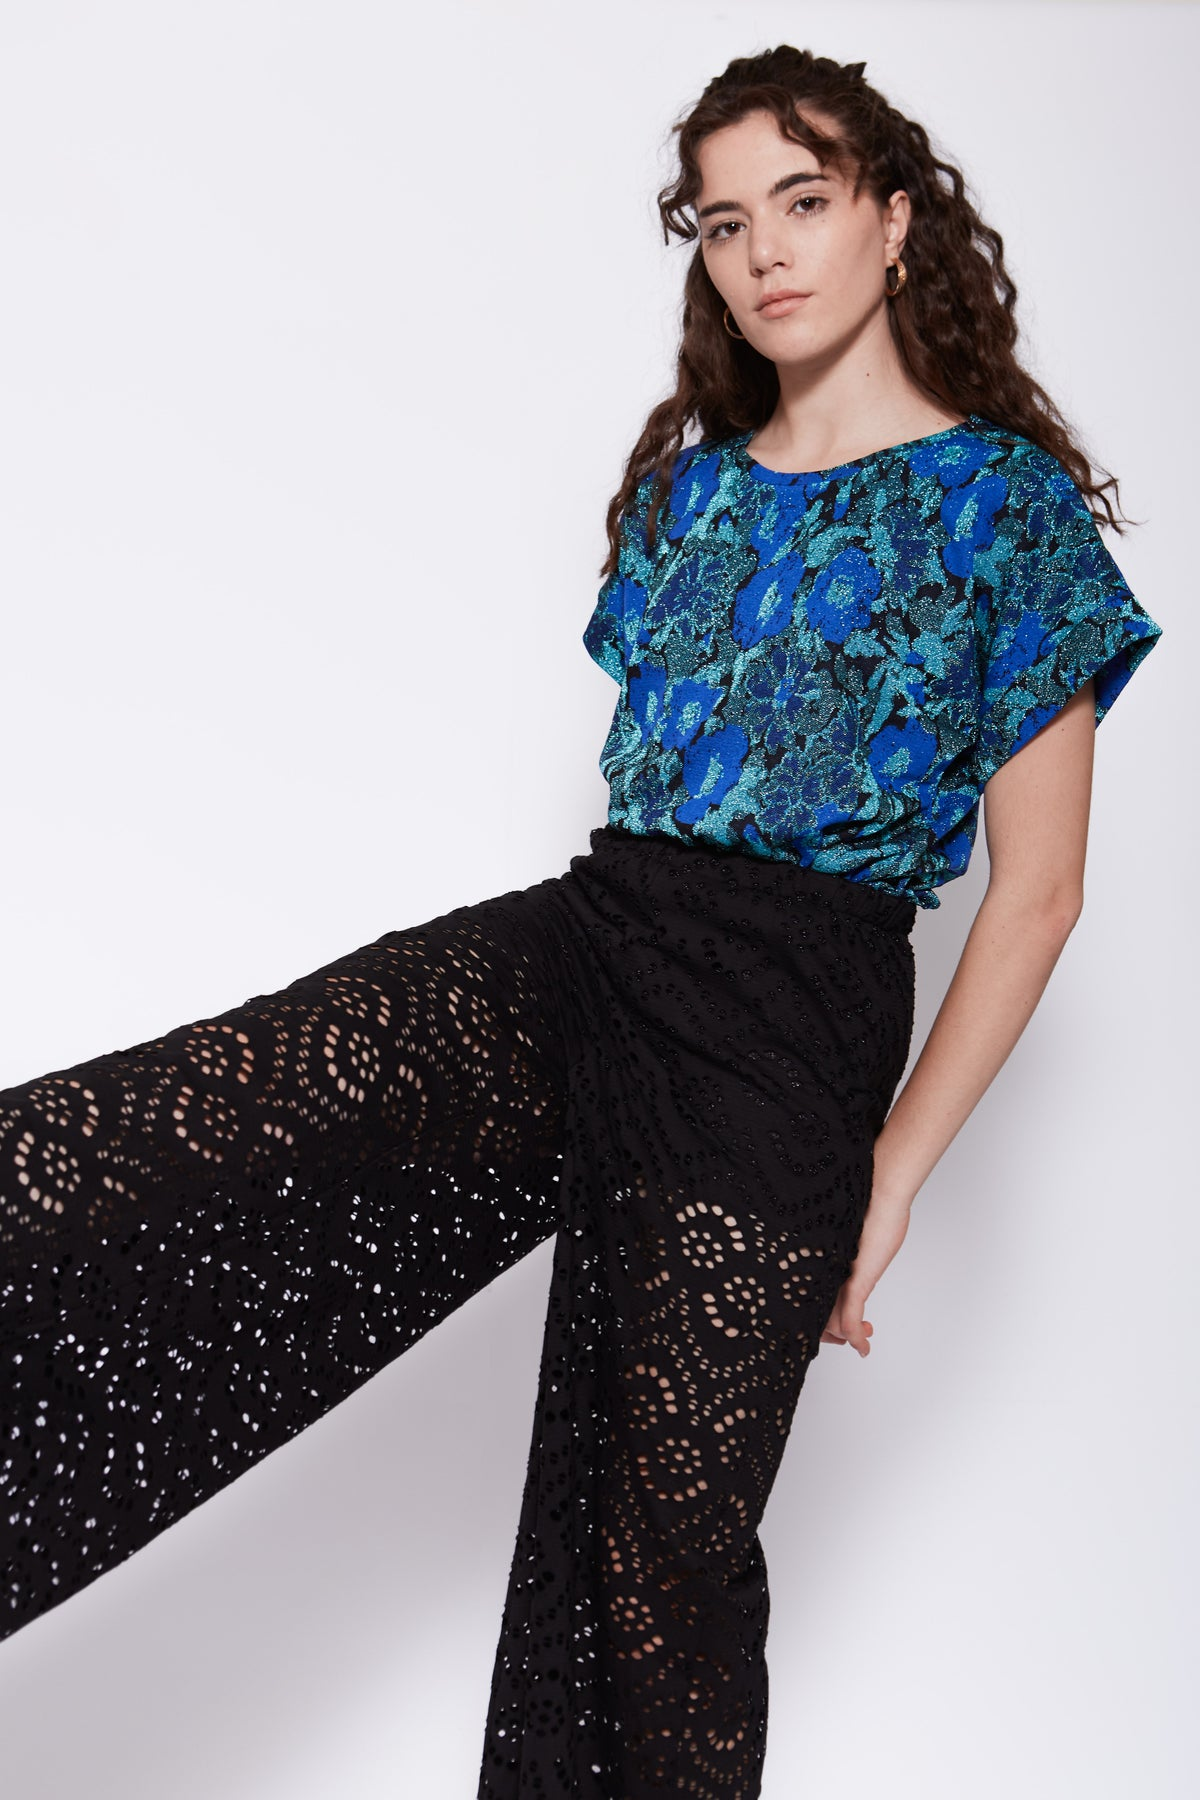 Image of T-SHIRT MALIA FIORI BLUETTE €125 - 50%